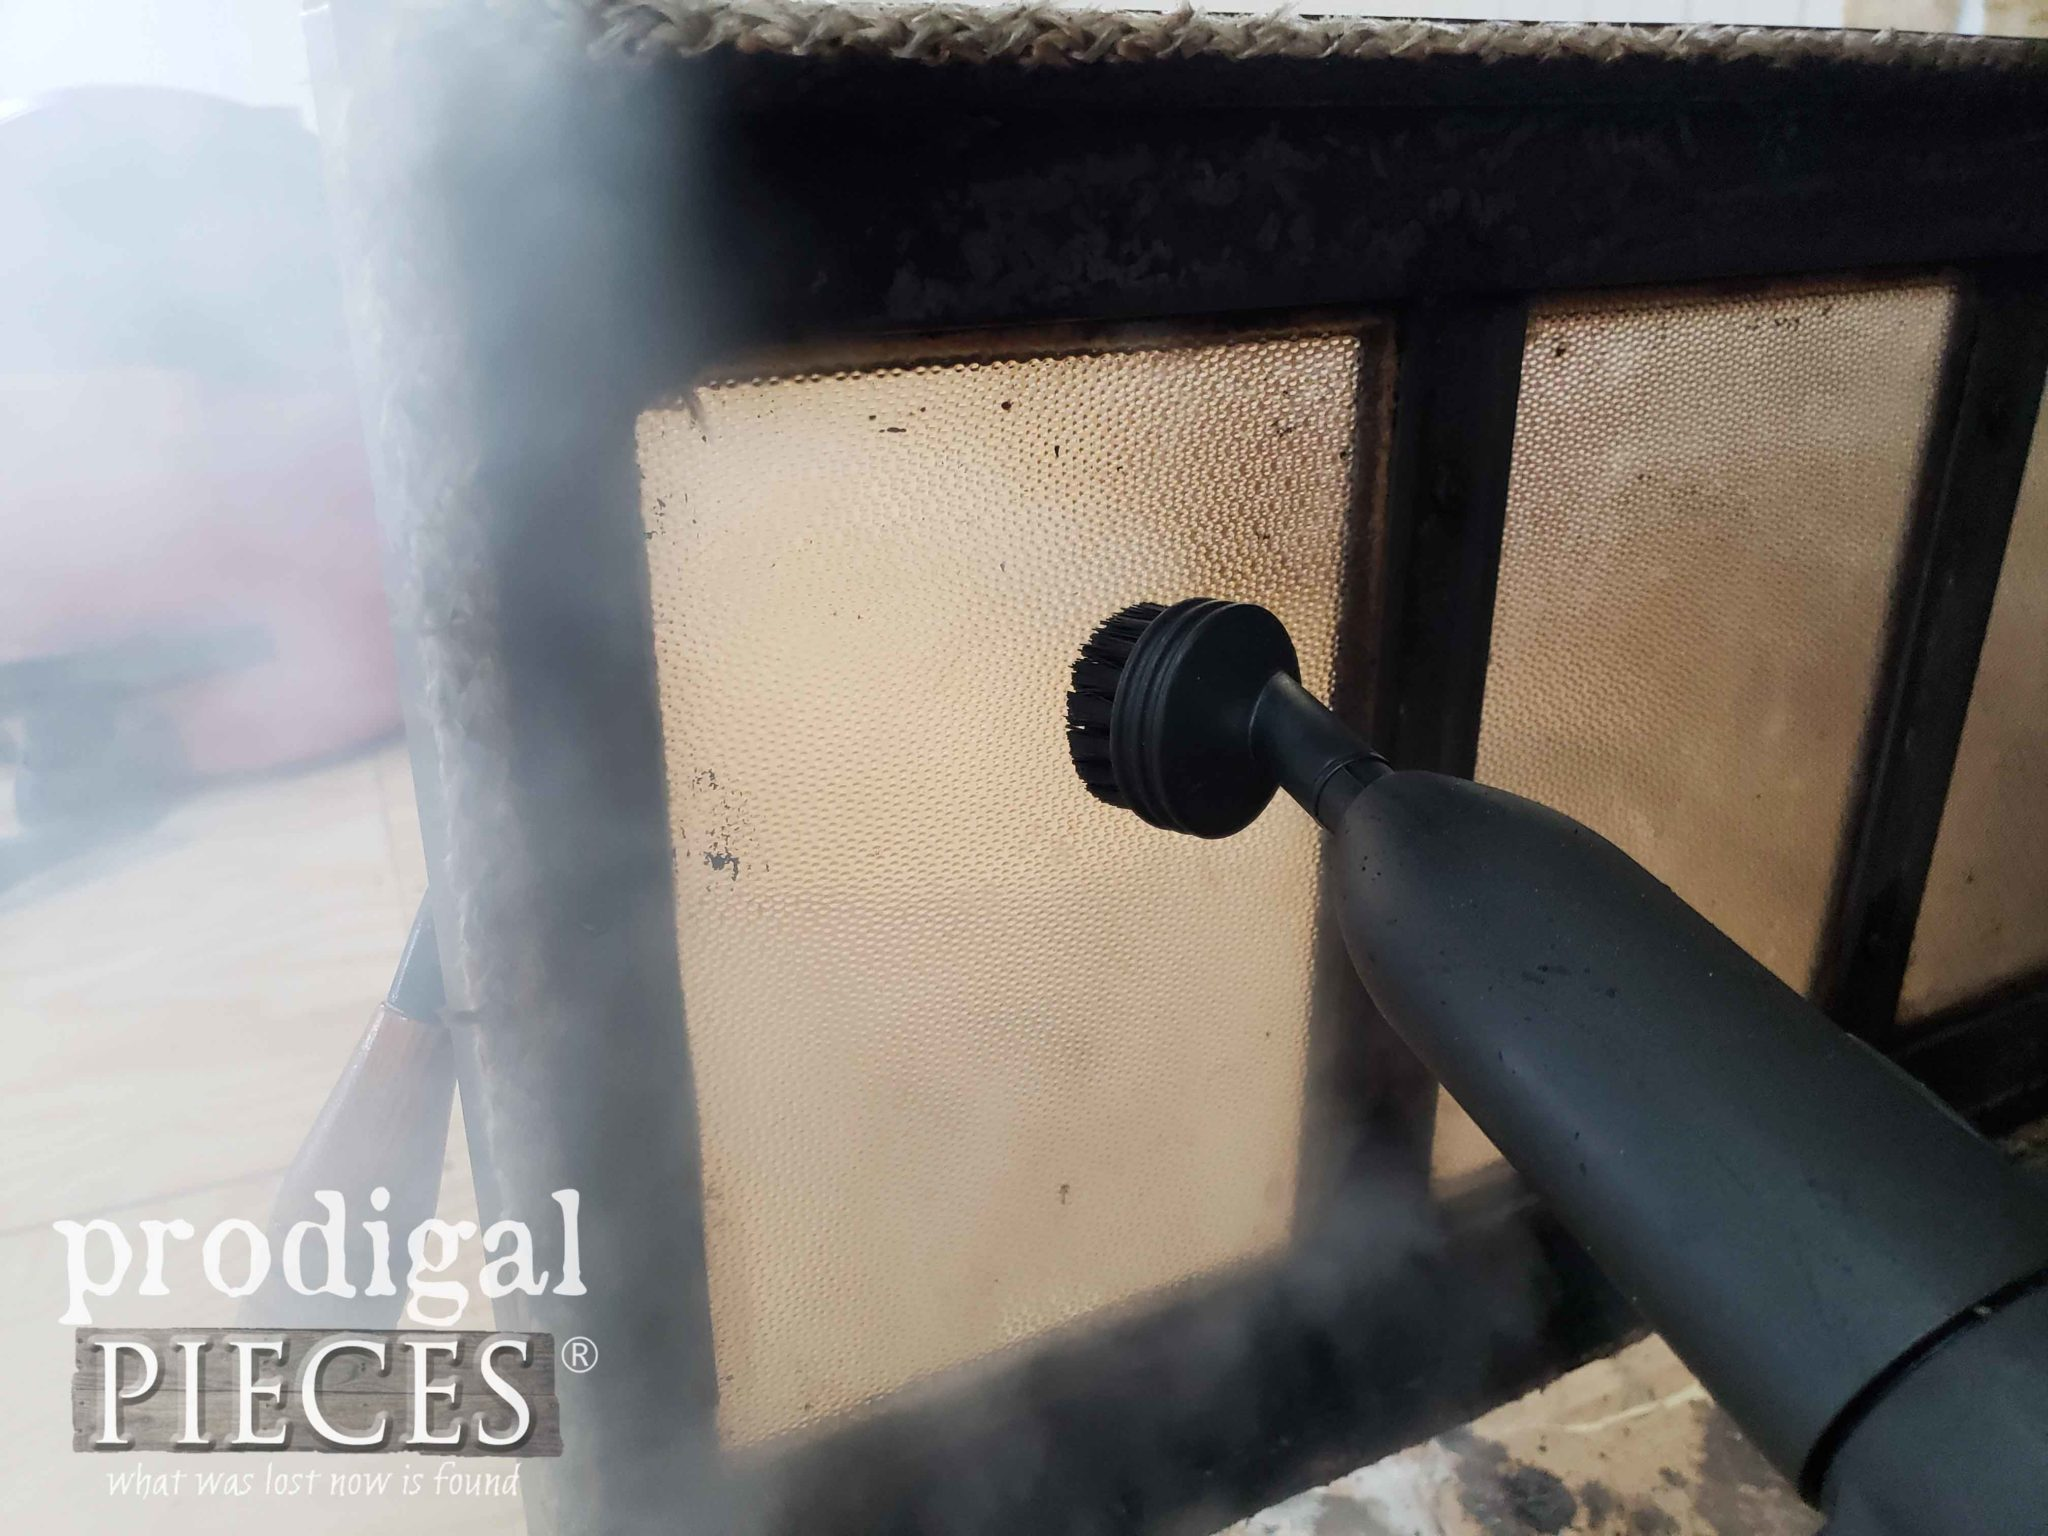 Steam Cleaning Fireplace Insert Door | prodigalpieces.com